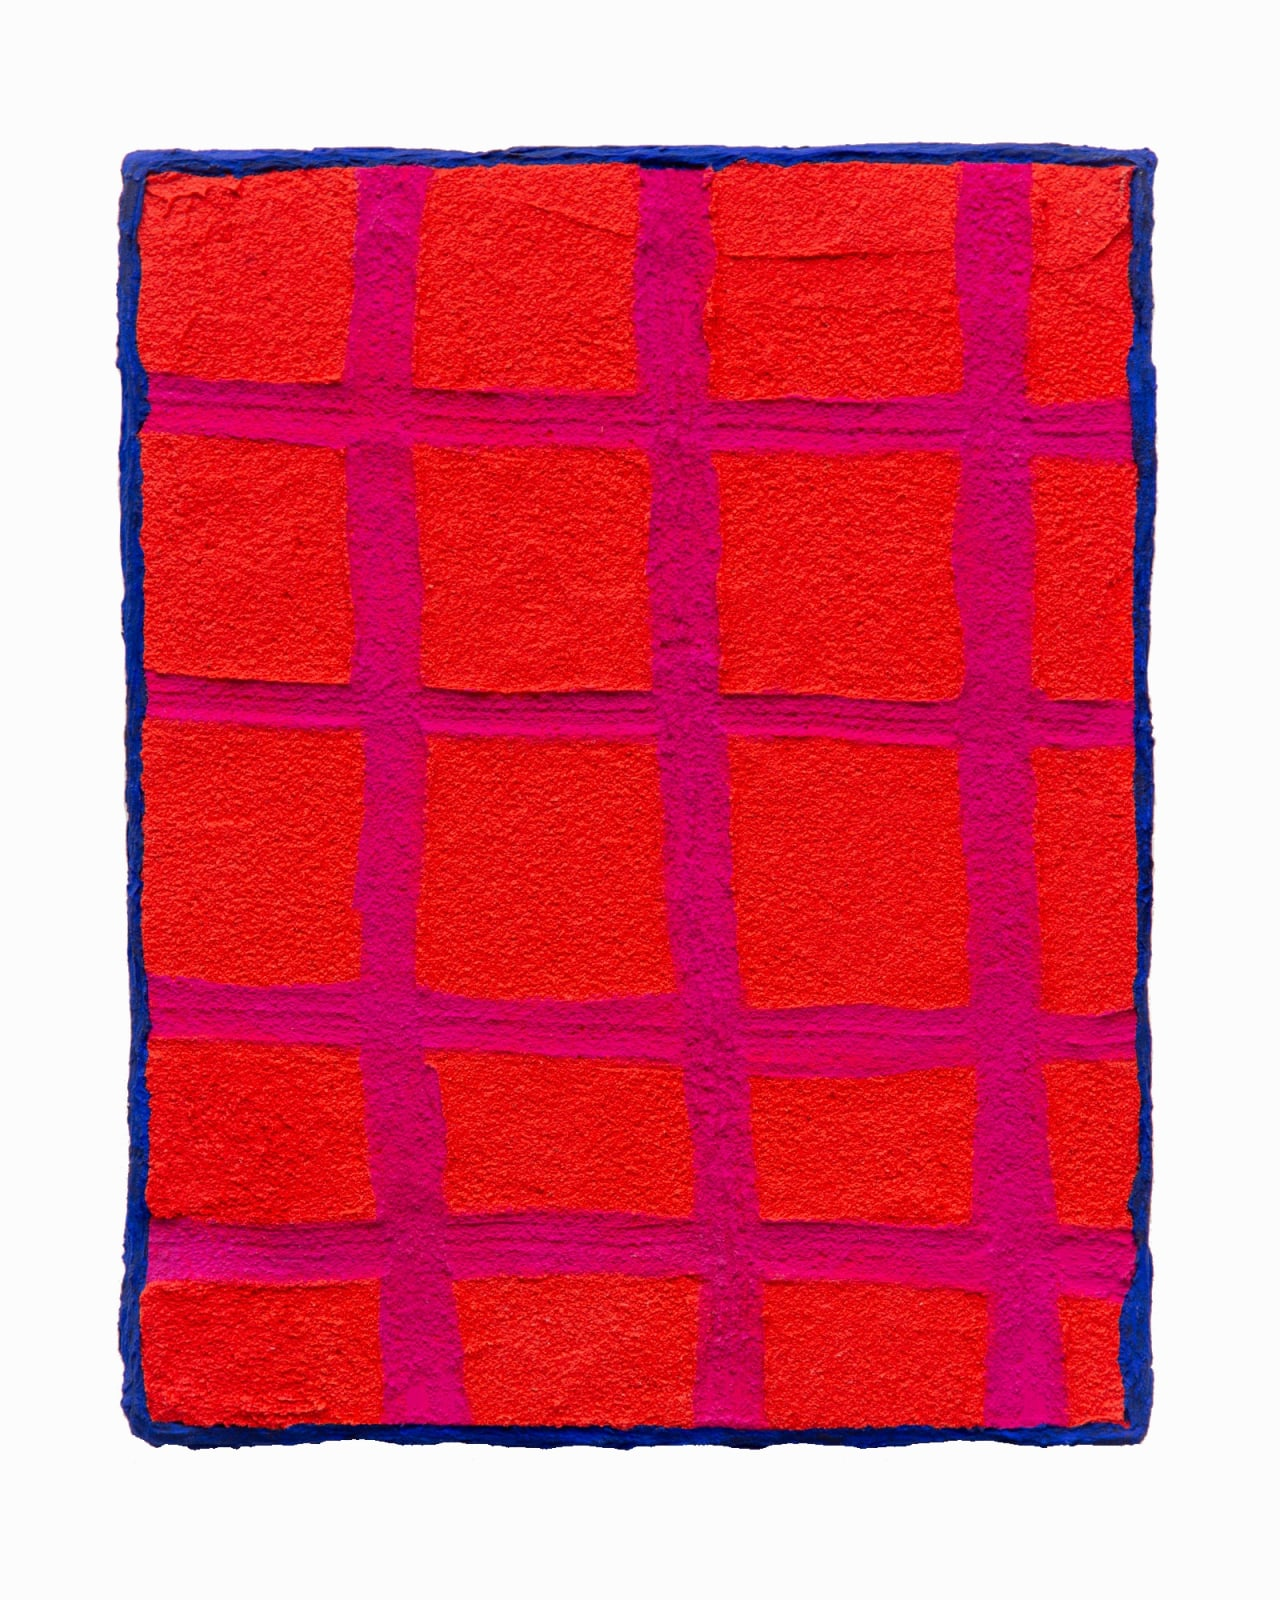 Nora Maité Nieves Red Amulet, 2020 Acrylic, flashe, coarse modeling paste, fiber-paste, and rhinestone on wood panel 11 x 14 in 27.9 x 35.6 cm